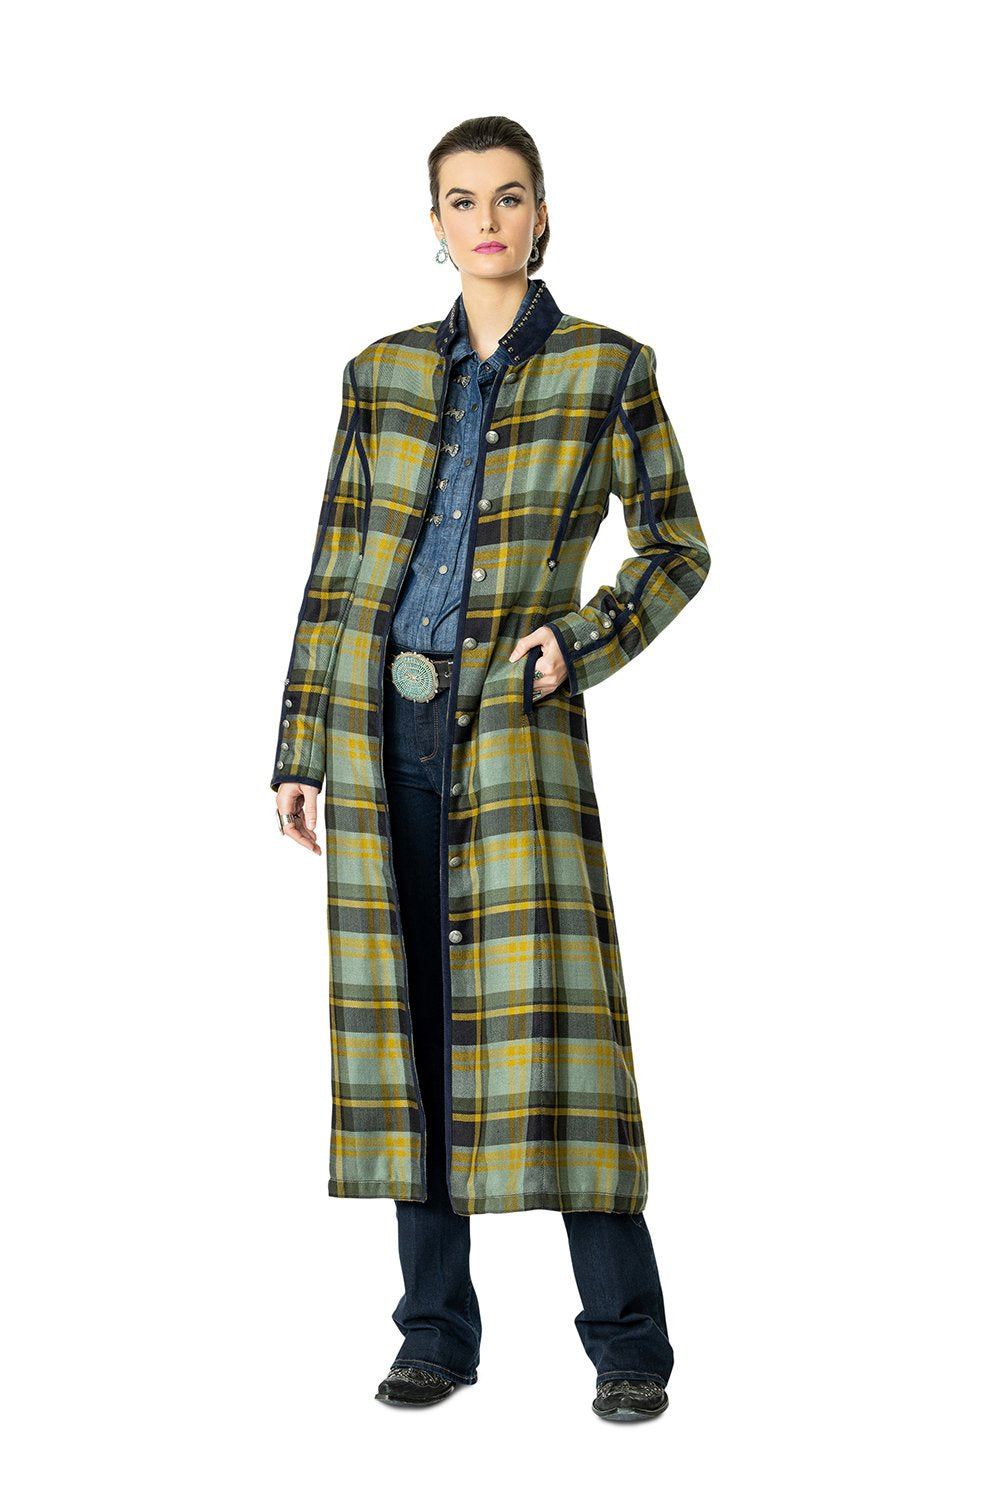 DDR Rodgers Plaid Duster 6Whiskey six whisky Taos Holiday Collection C2762